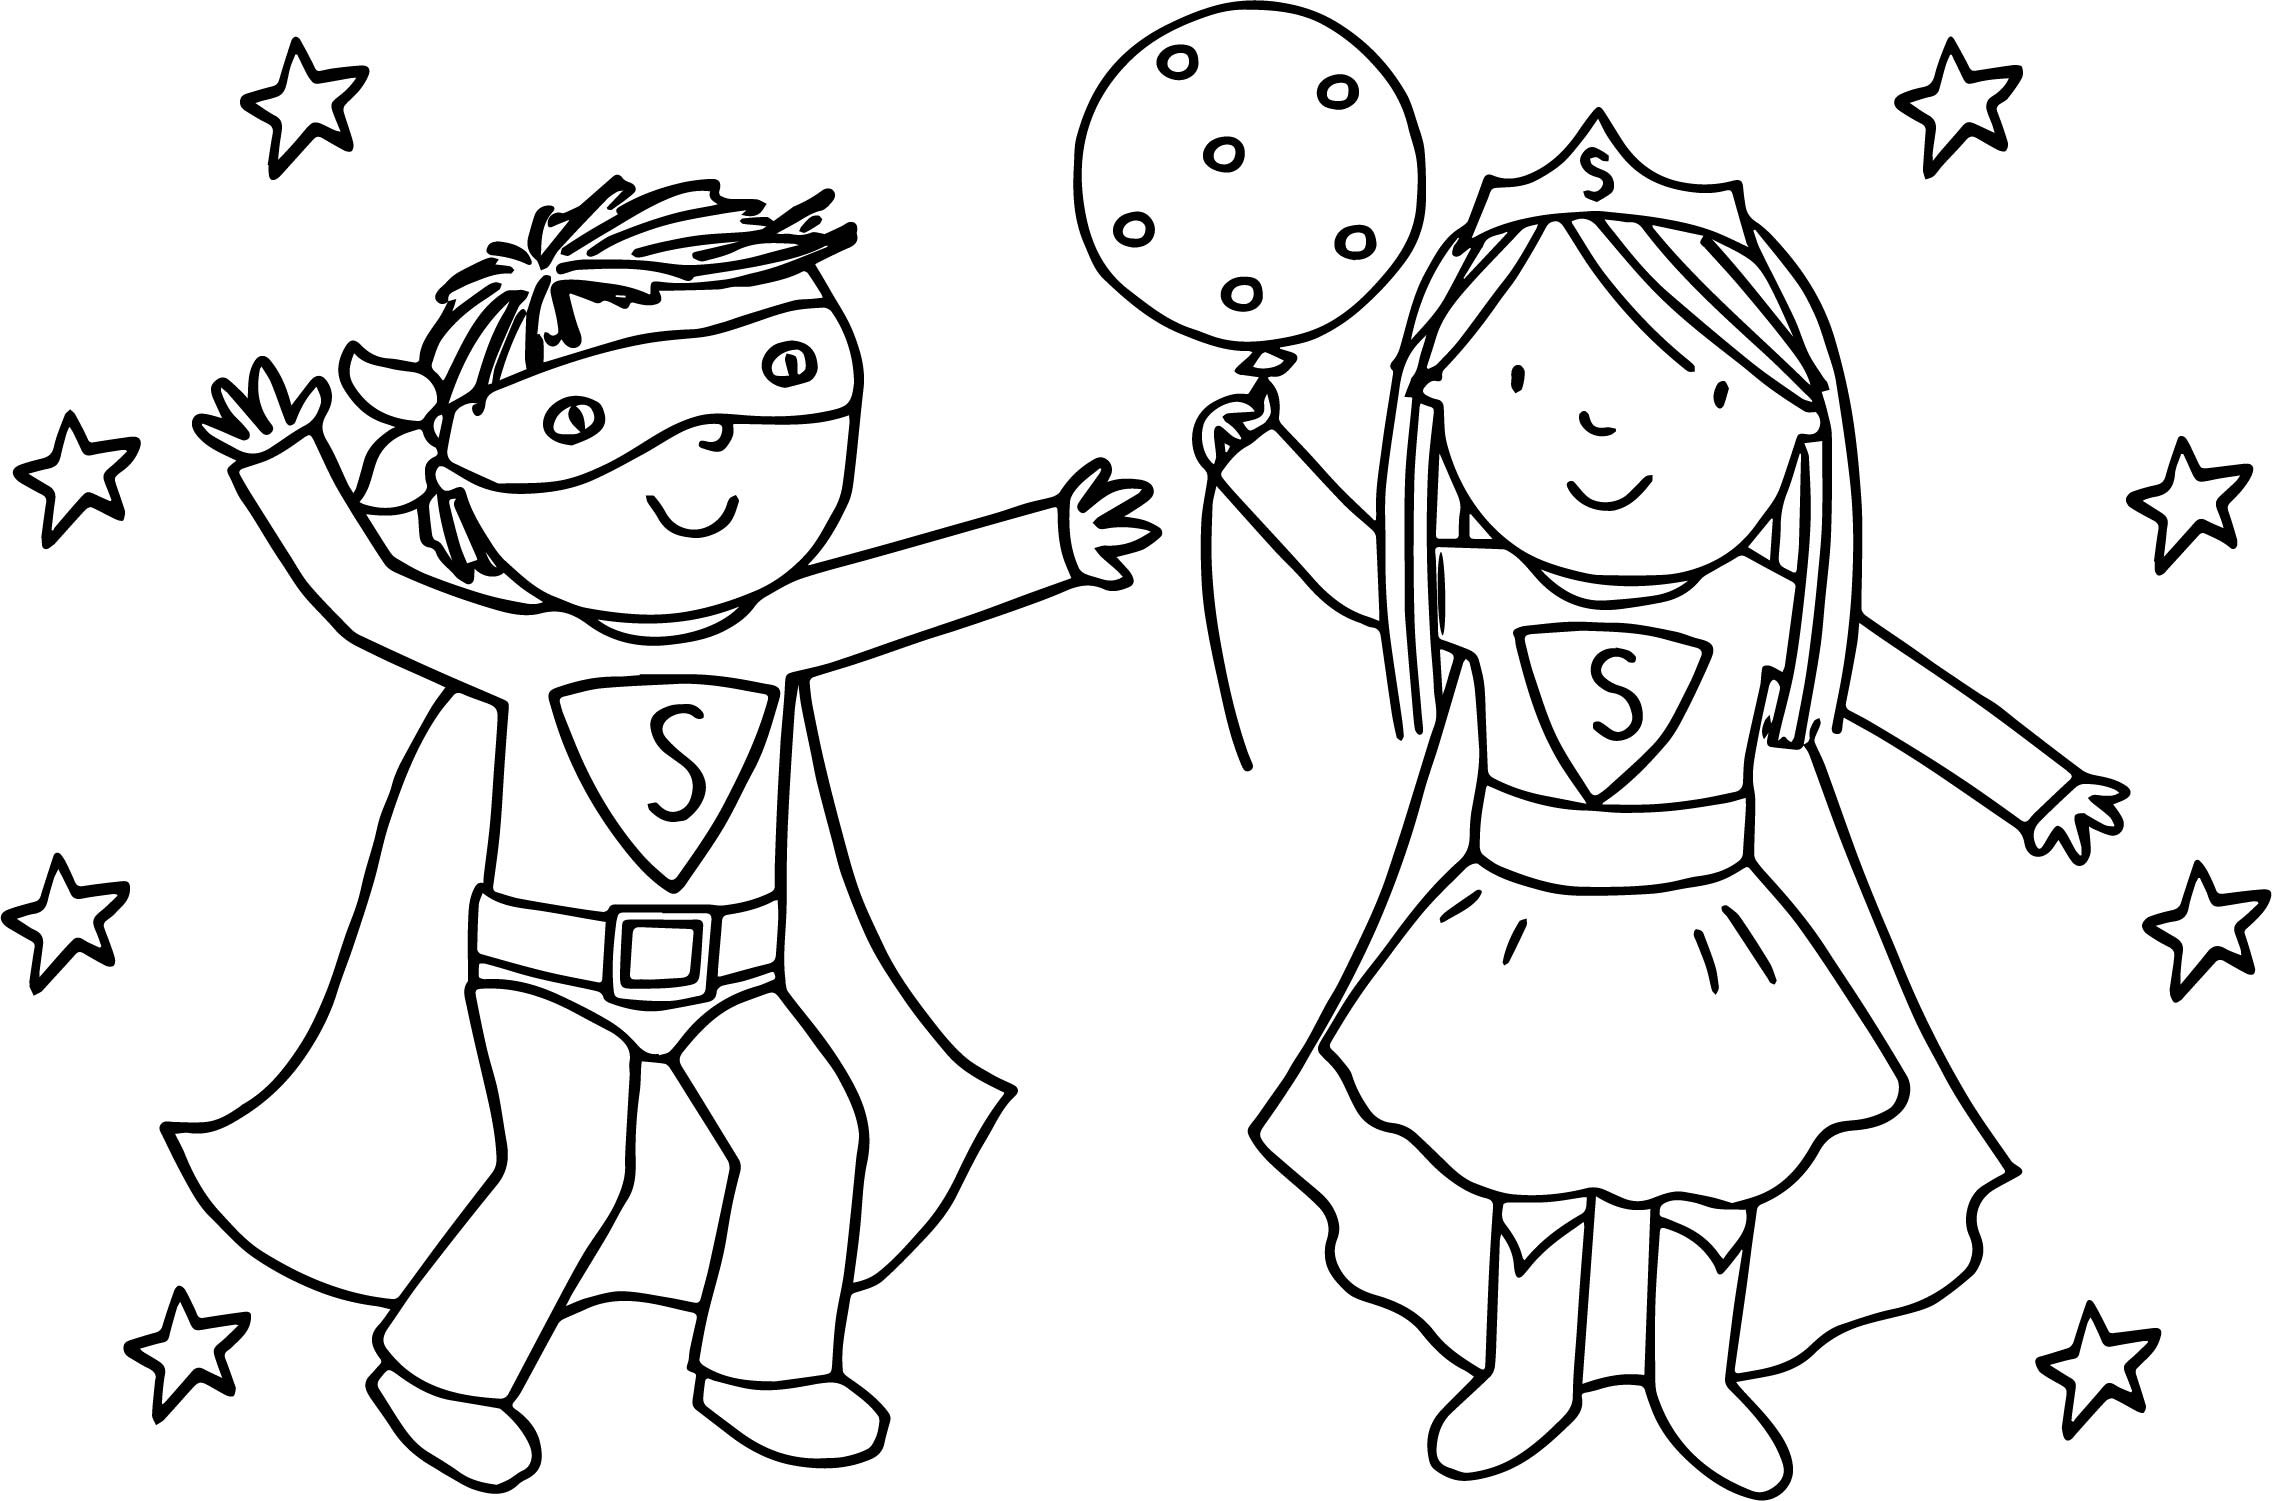 Coloring Sheets For Girls And Boys  Boy And Girl Coloring Pages